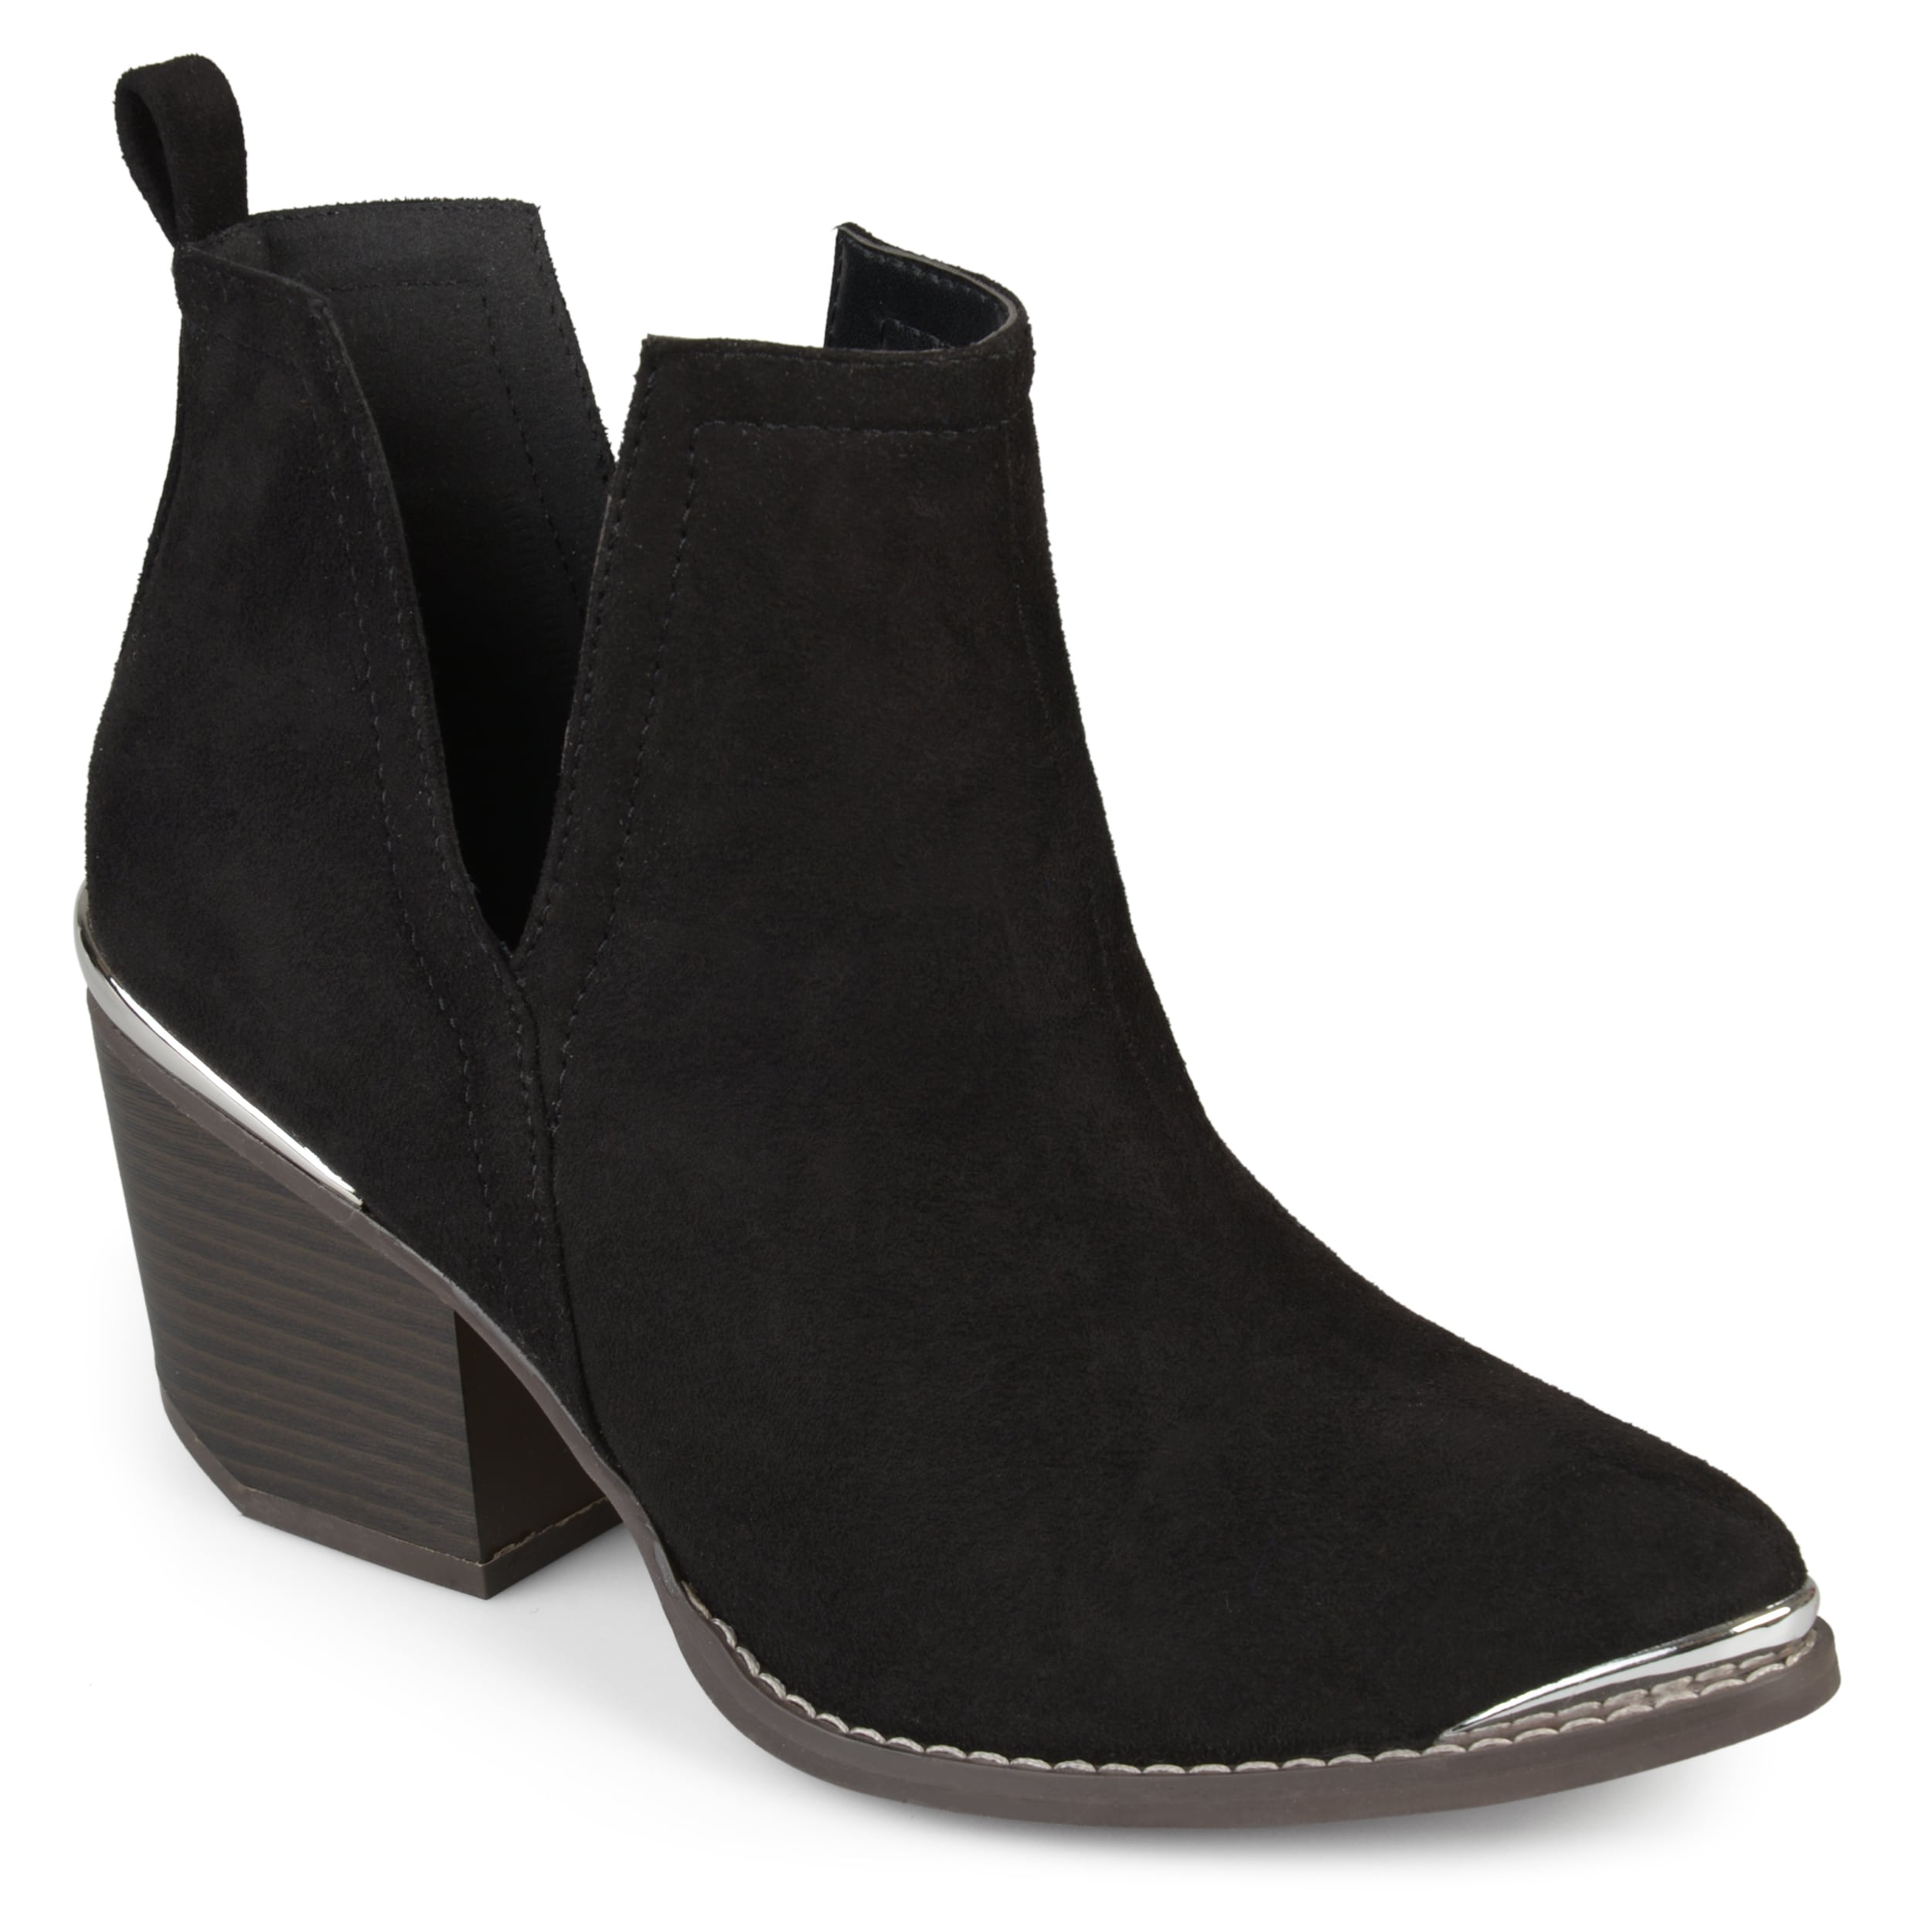 Journee Collection Issla ... Women's Ankle Boots vfmhObG